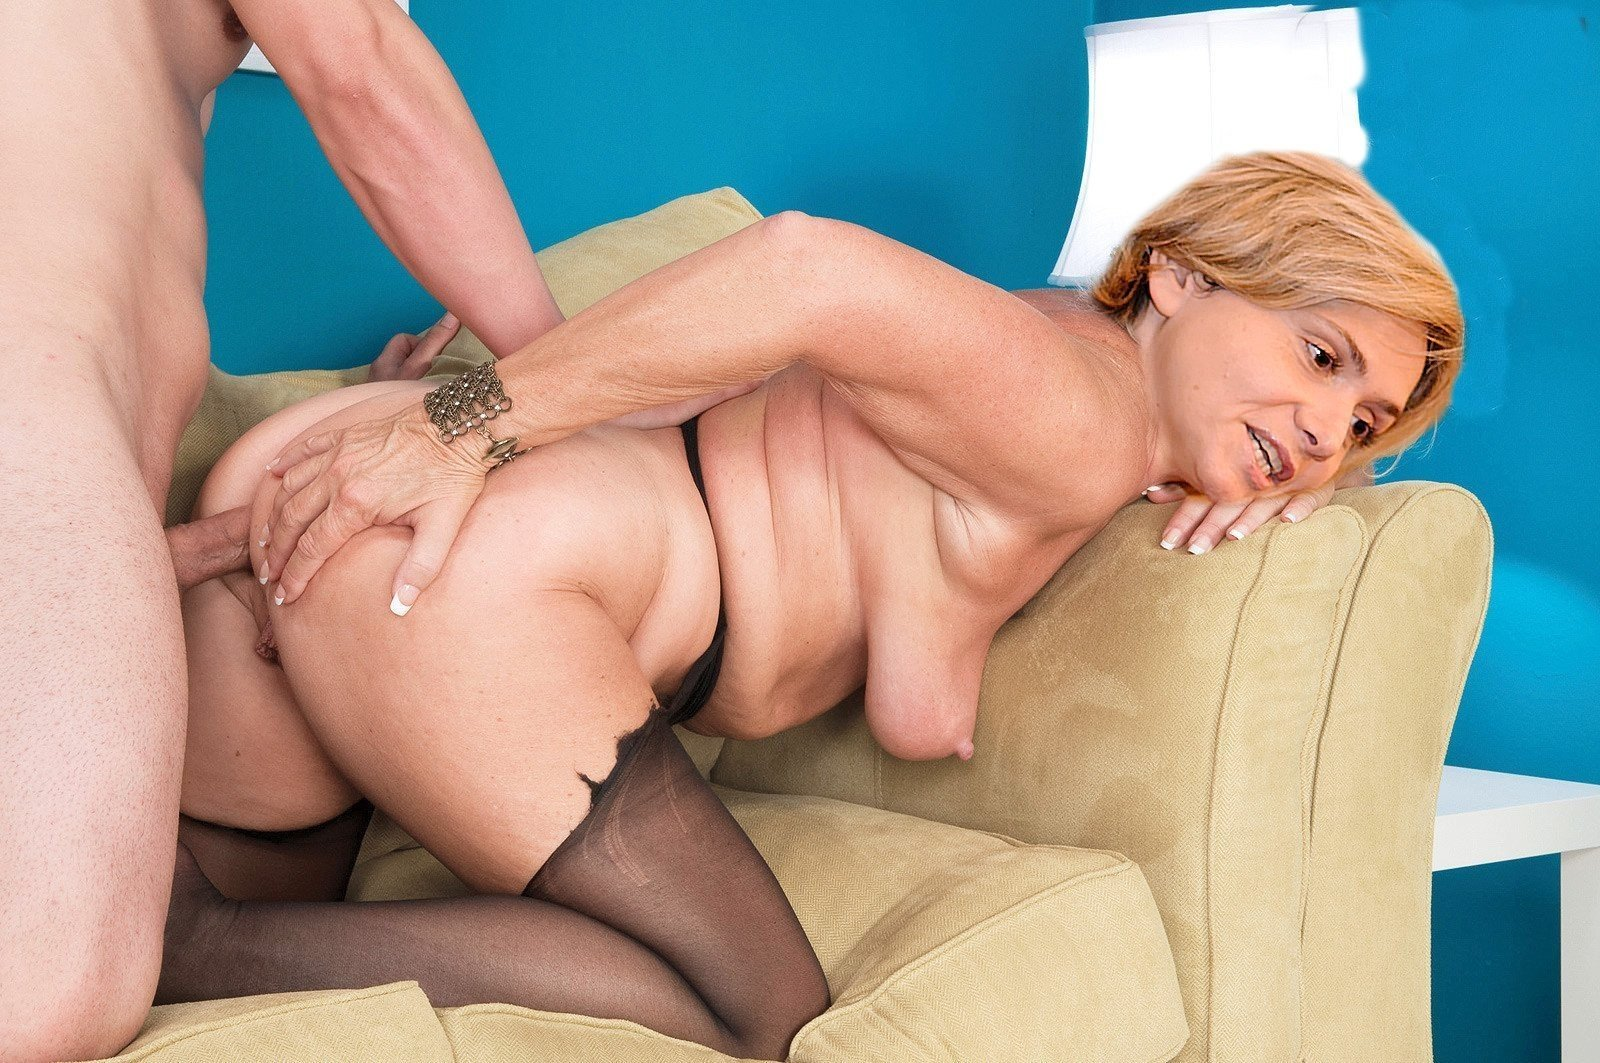 Granny Anal Big Tits Porn, Busty Granny Anal Sex Images